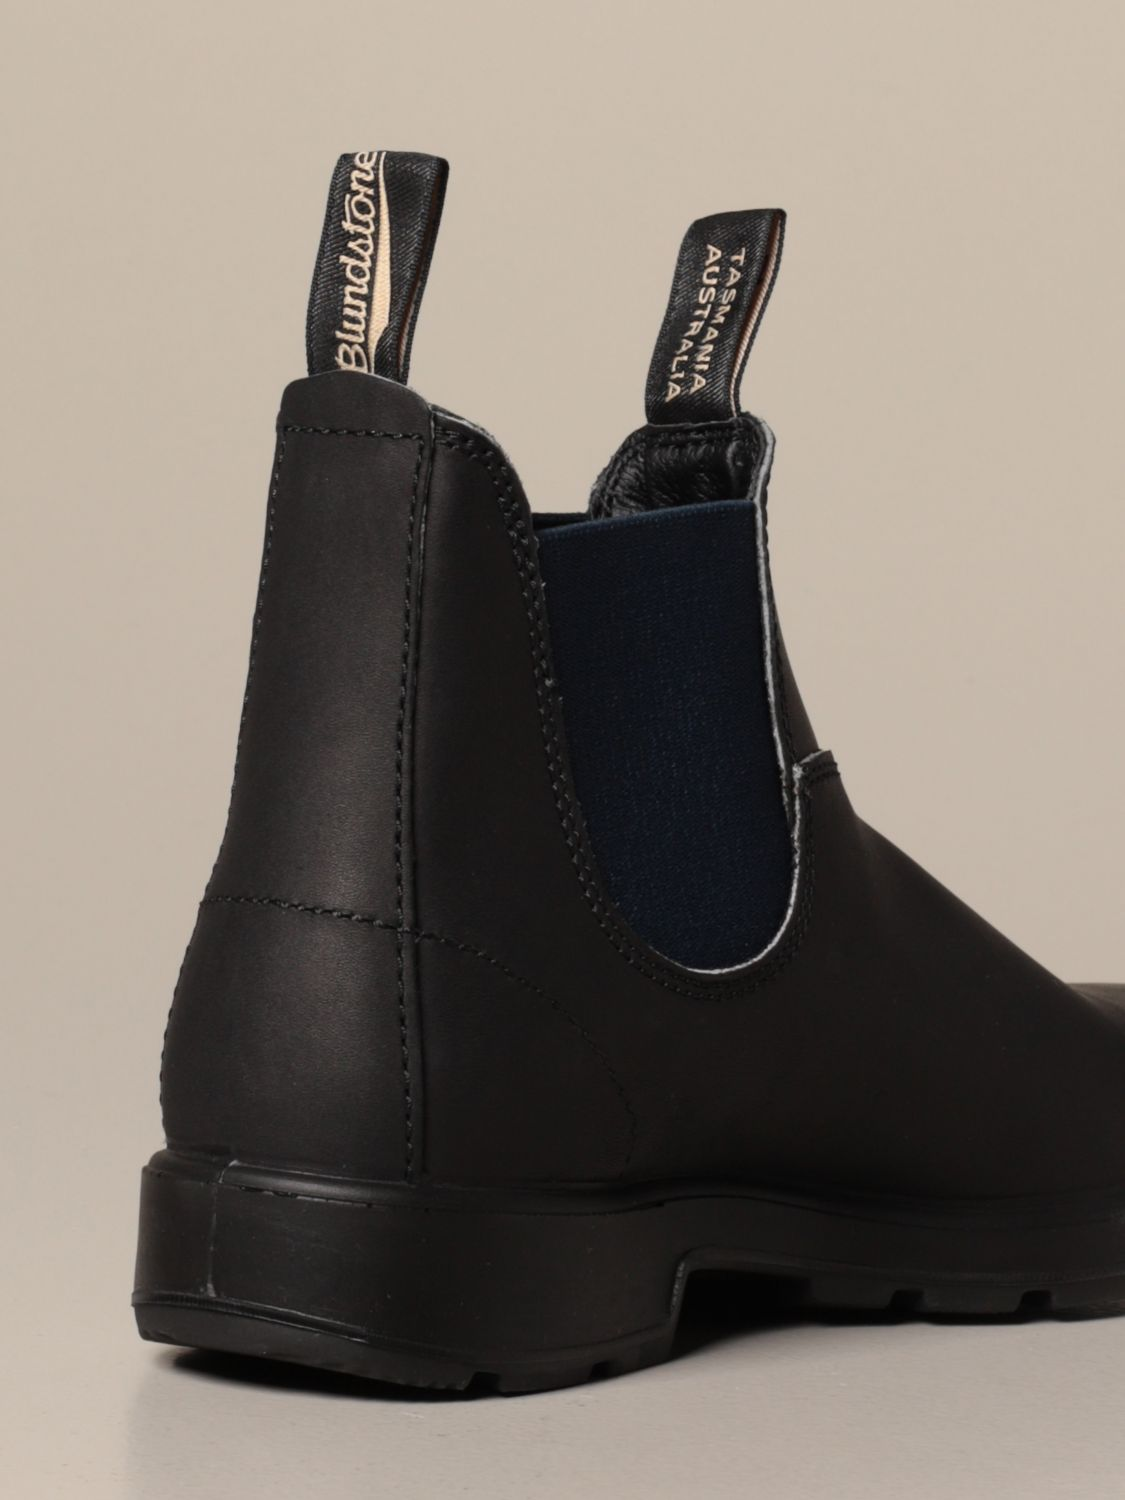 Boots Blundstone: Boots men Blundstone navy 3